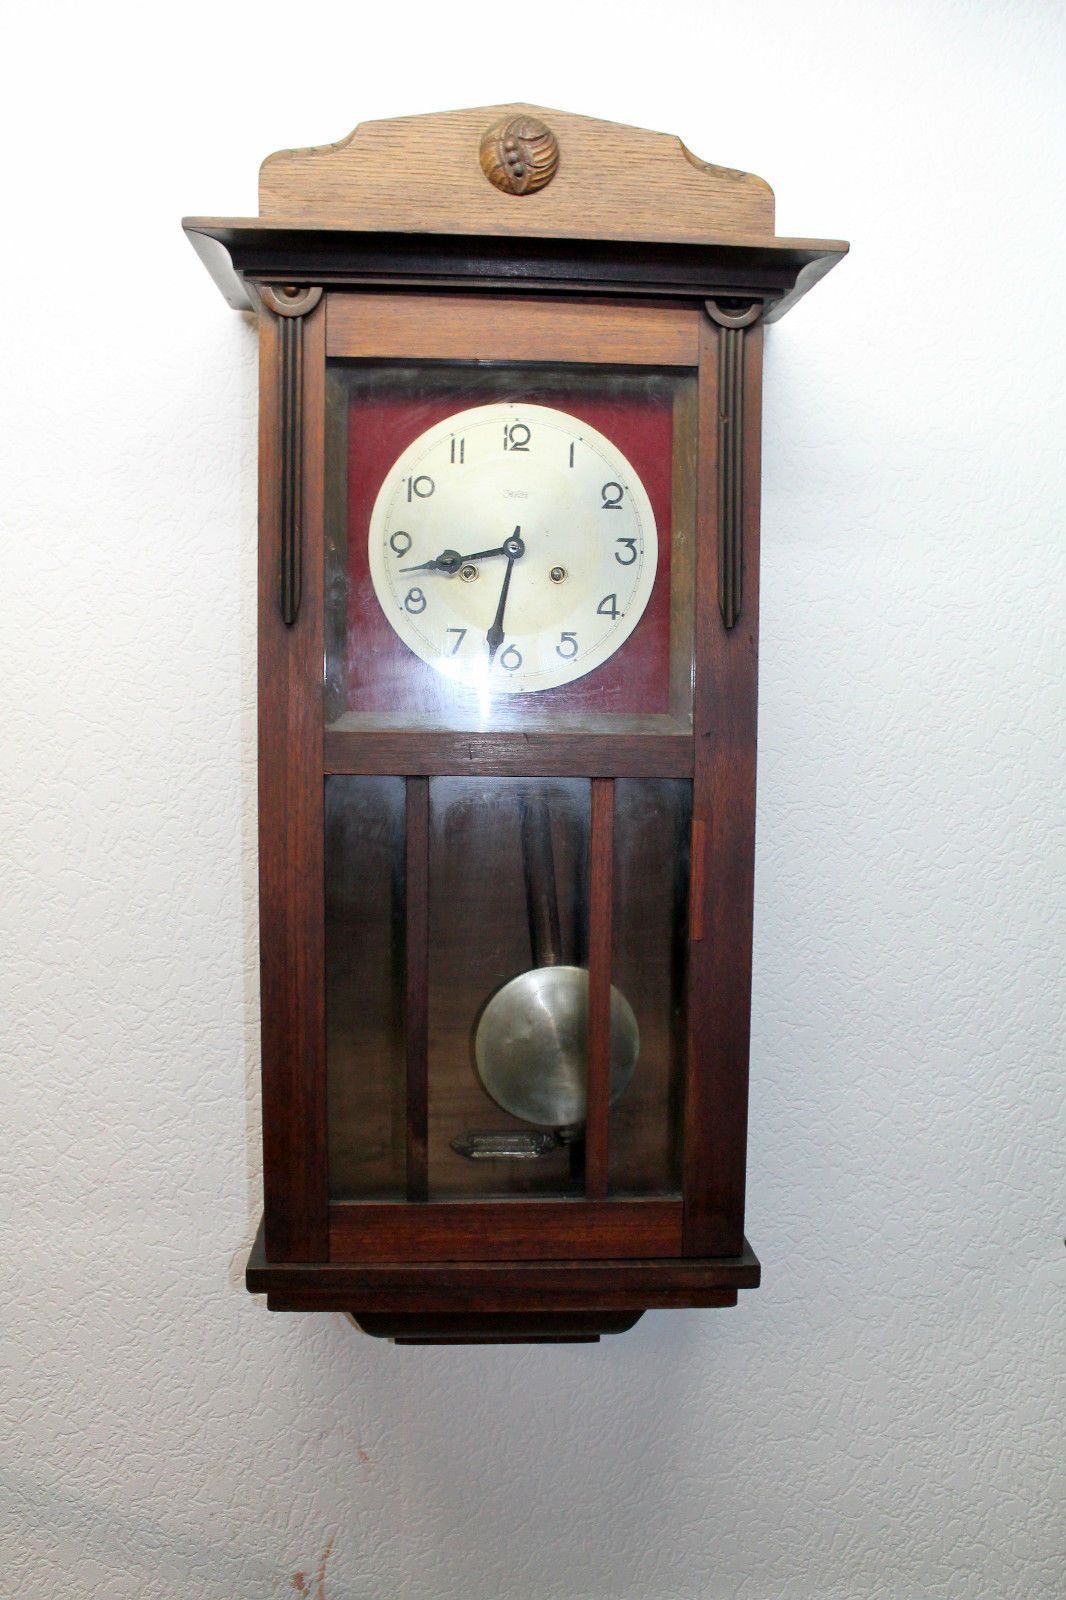 Antique Wall Clock Regulator Clock KIENZLE ZENTRA JUNGHANS